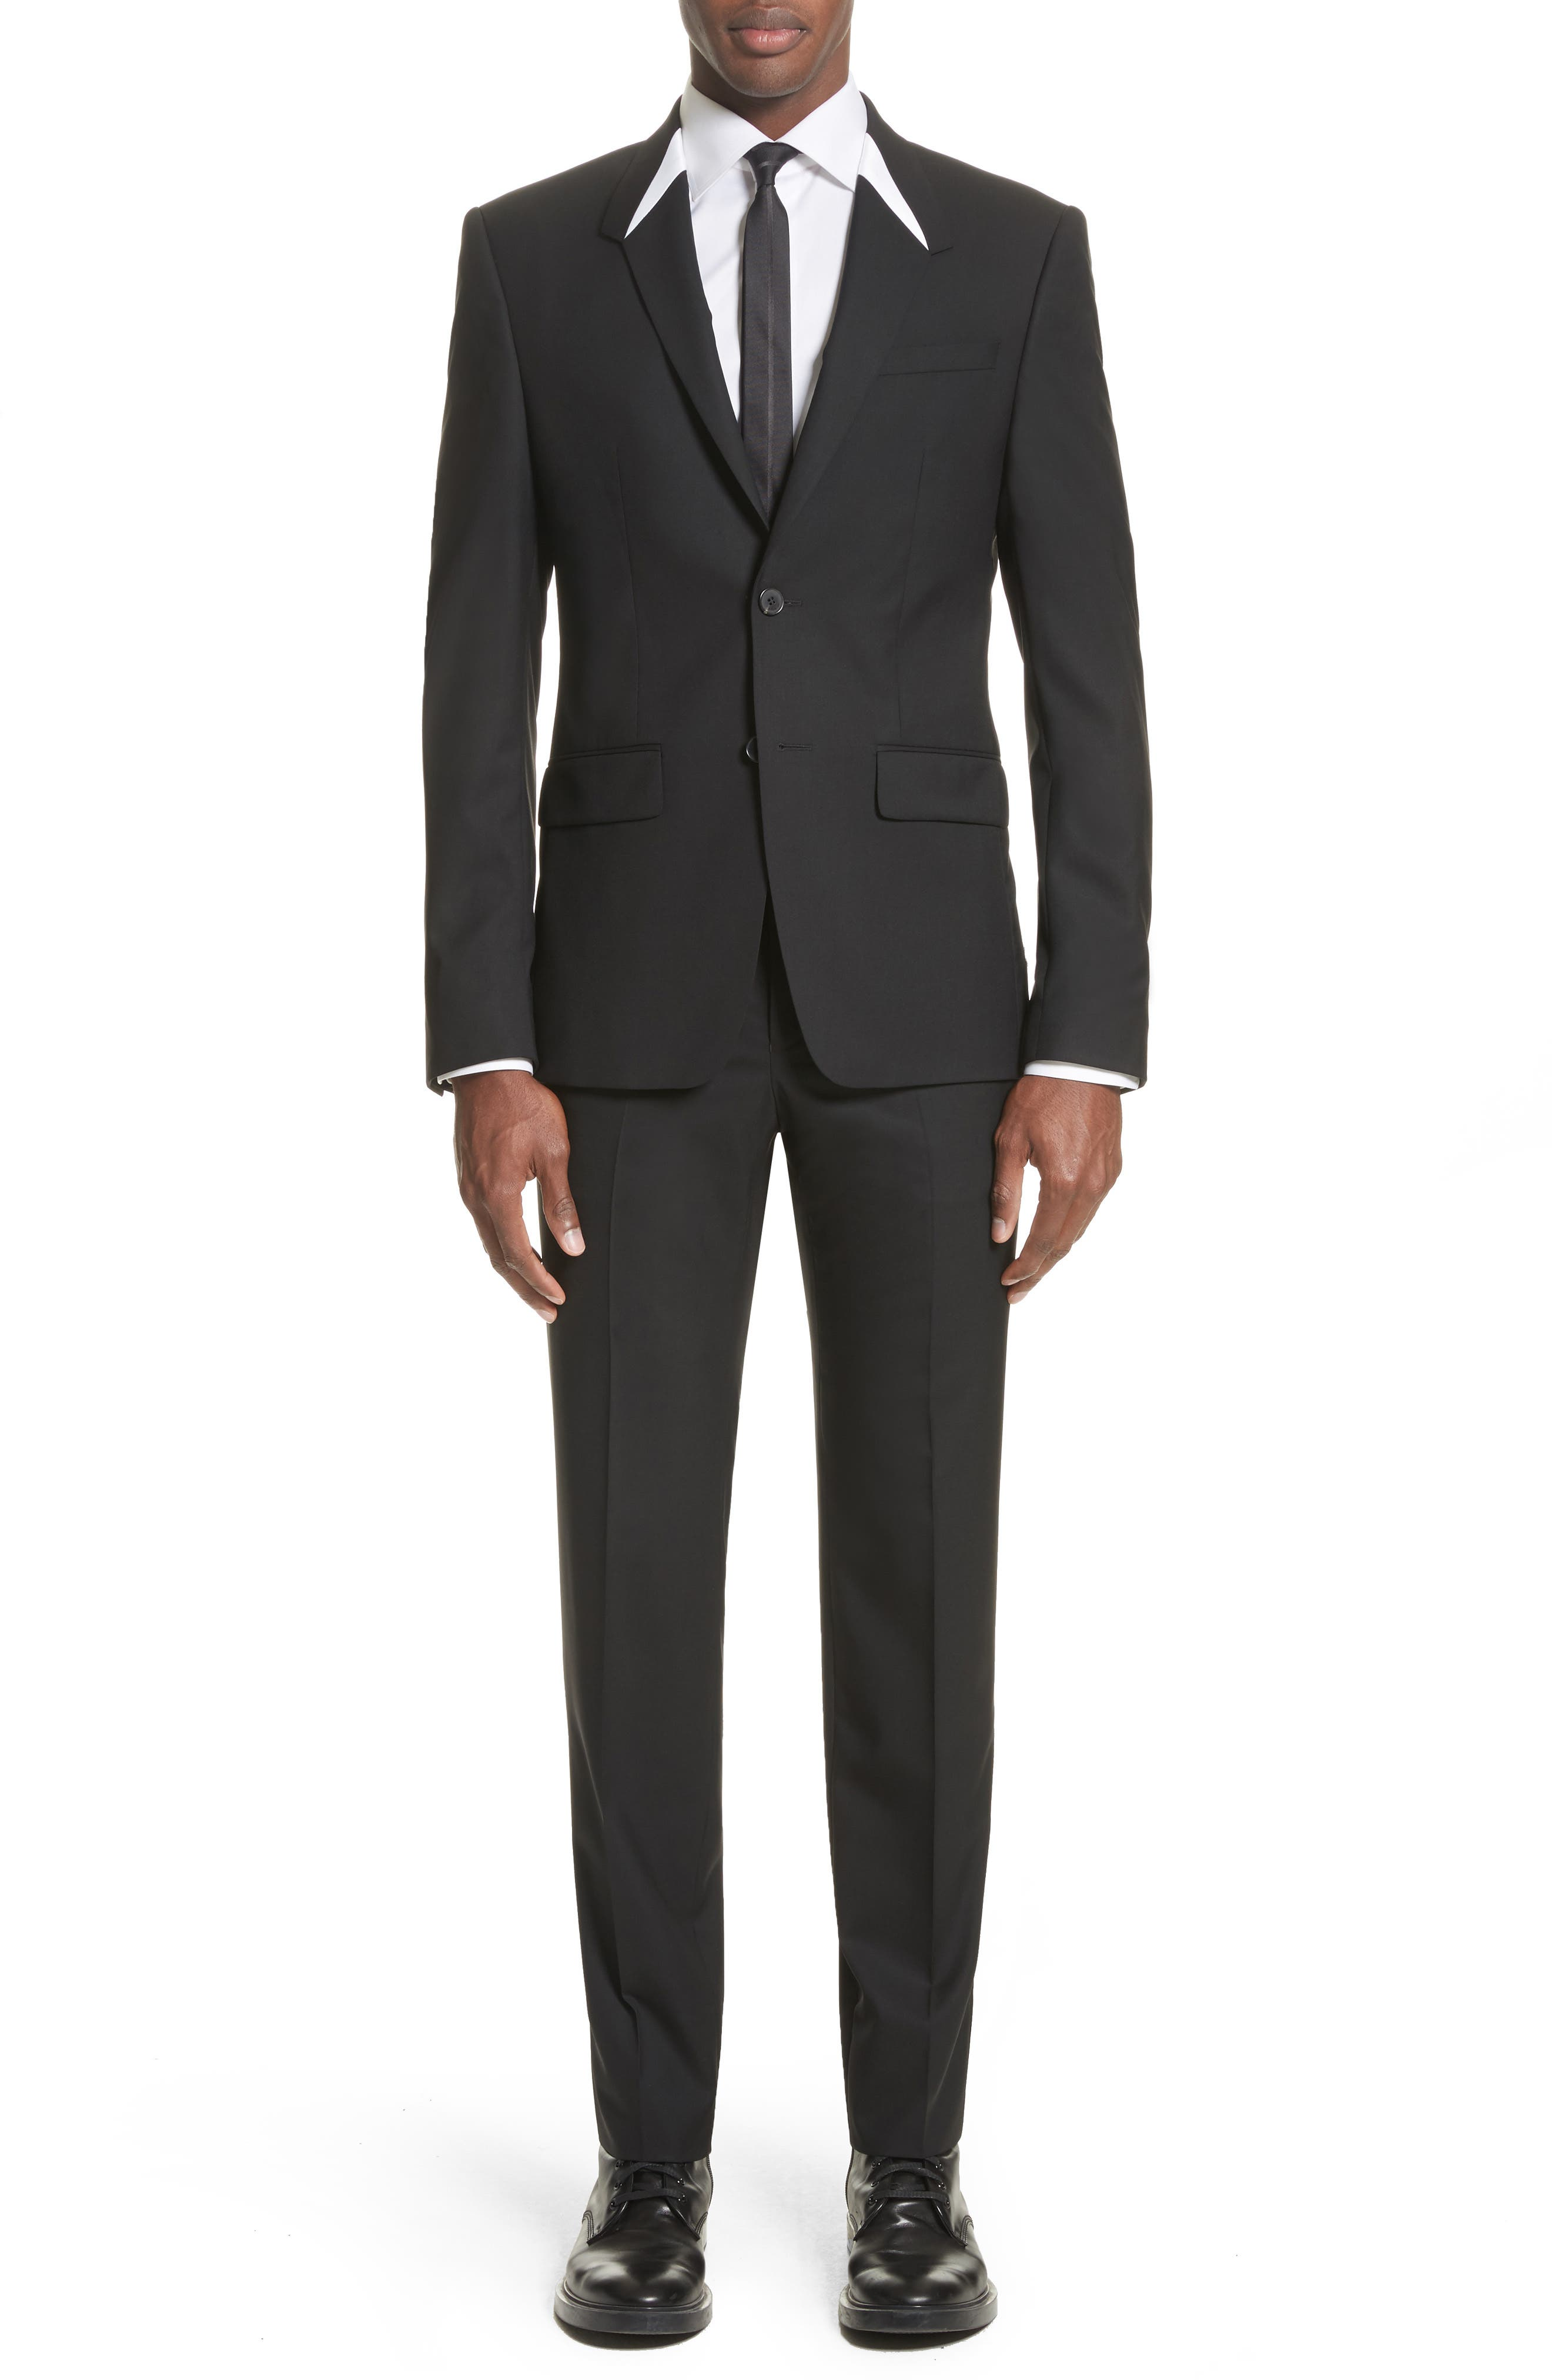 White Inset Madonna Collar Wool Suit,                         Main,                         color, Black